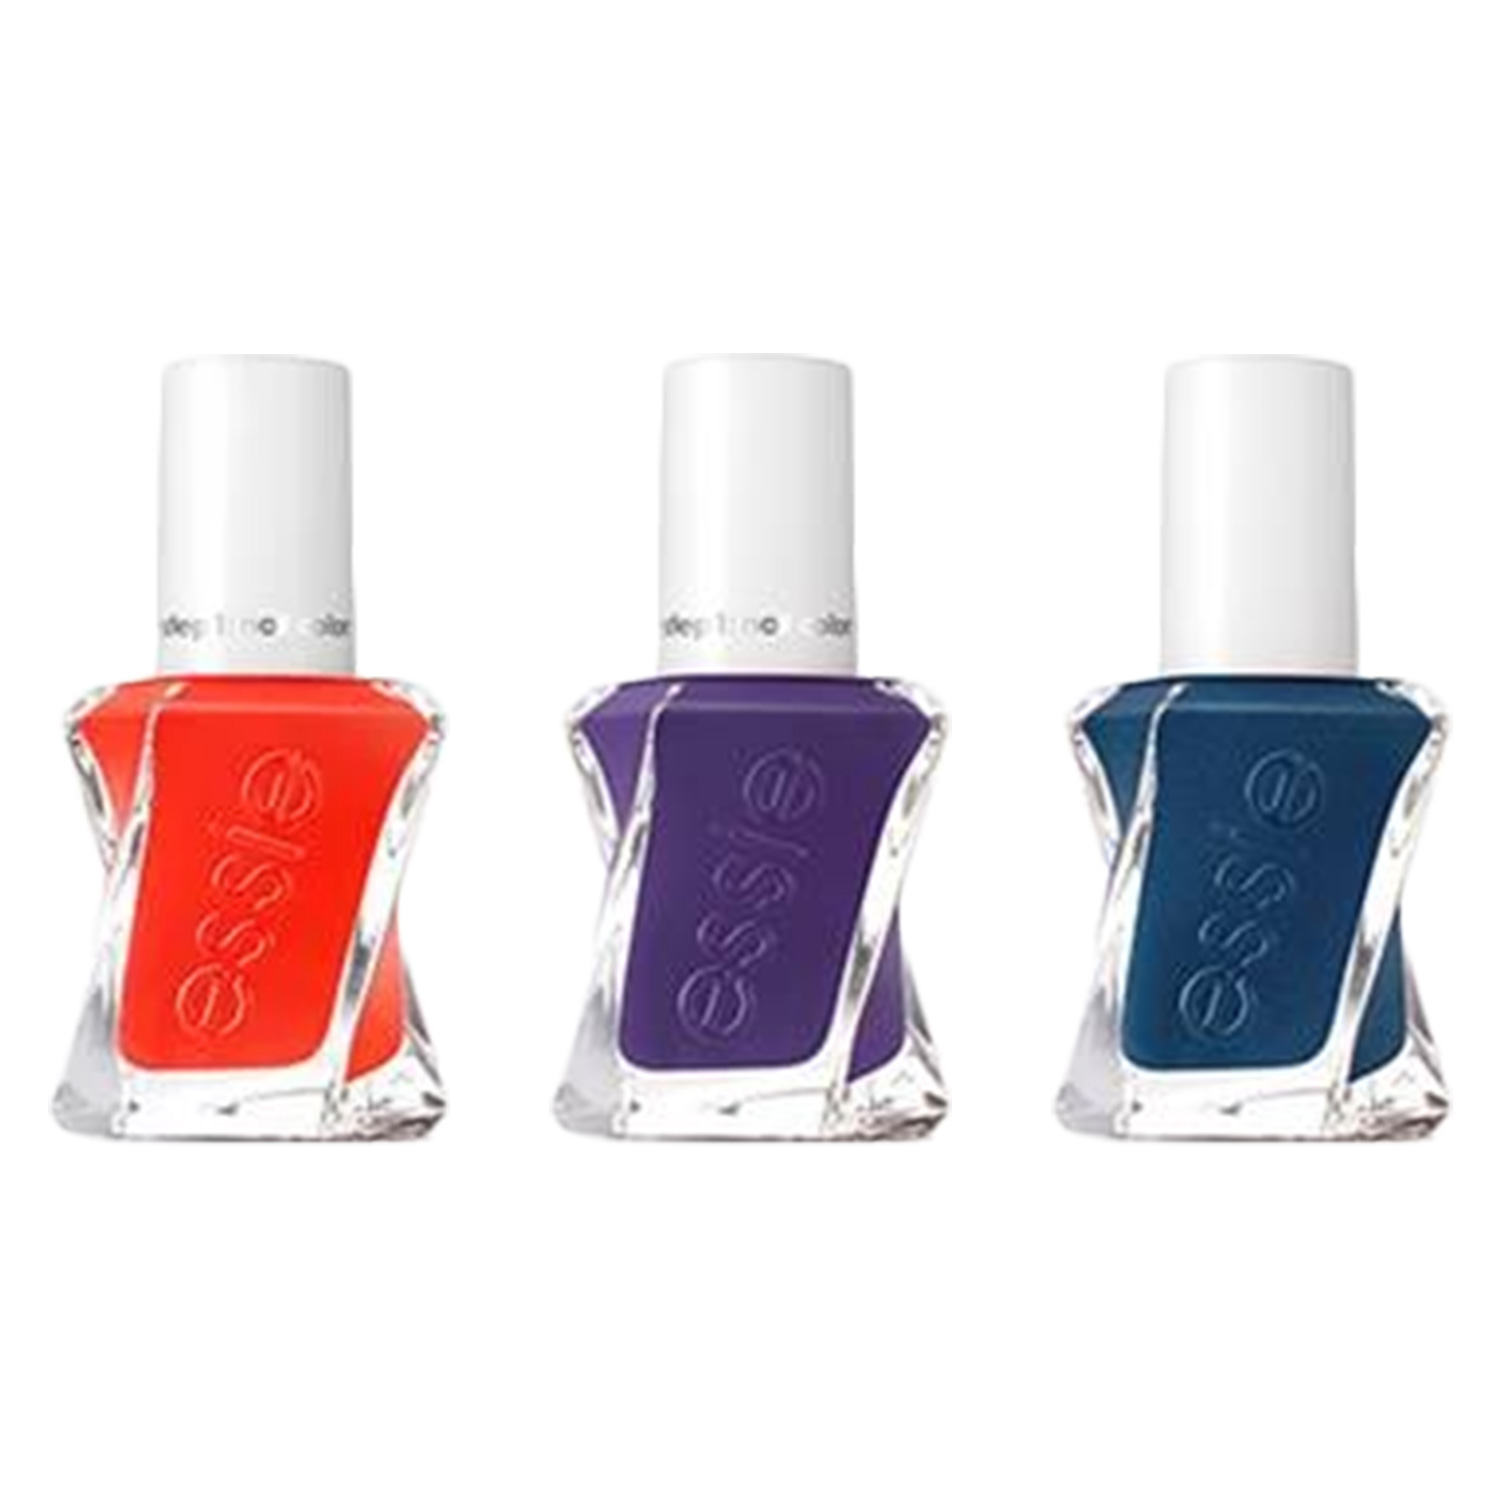 Essie Gel Couture Nail Polish - Ikatehouse